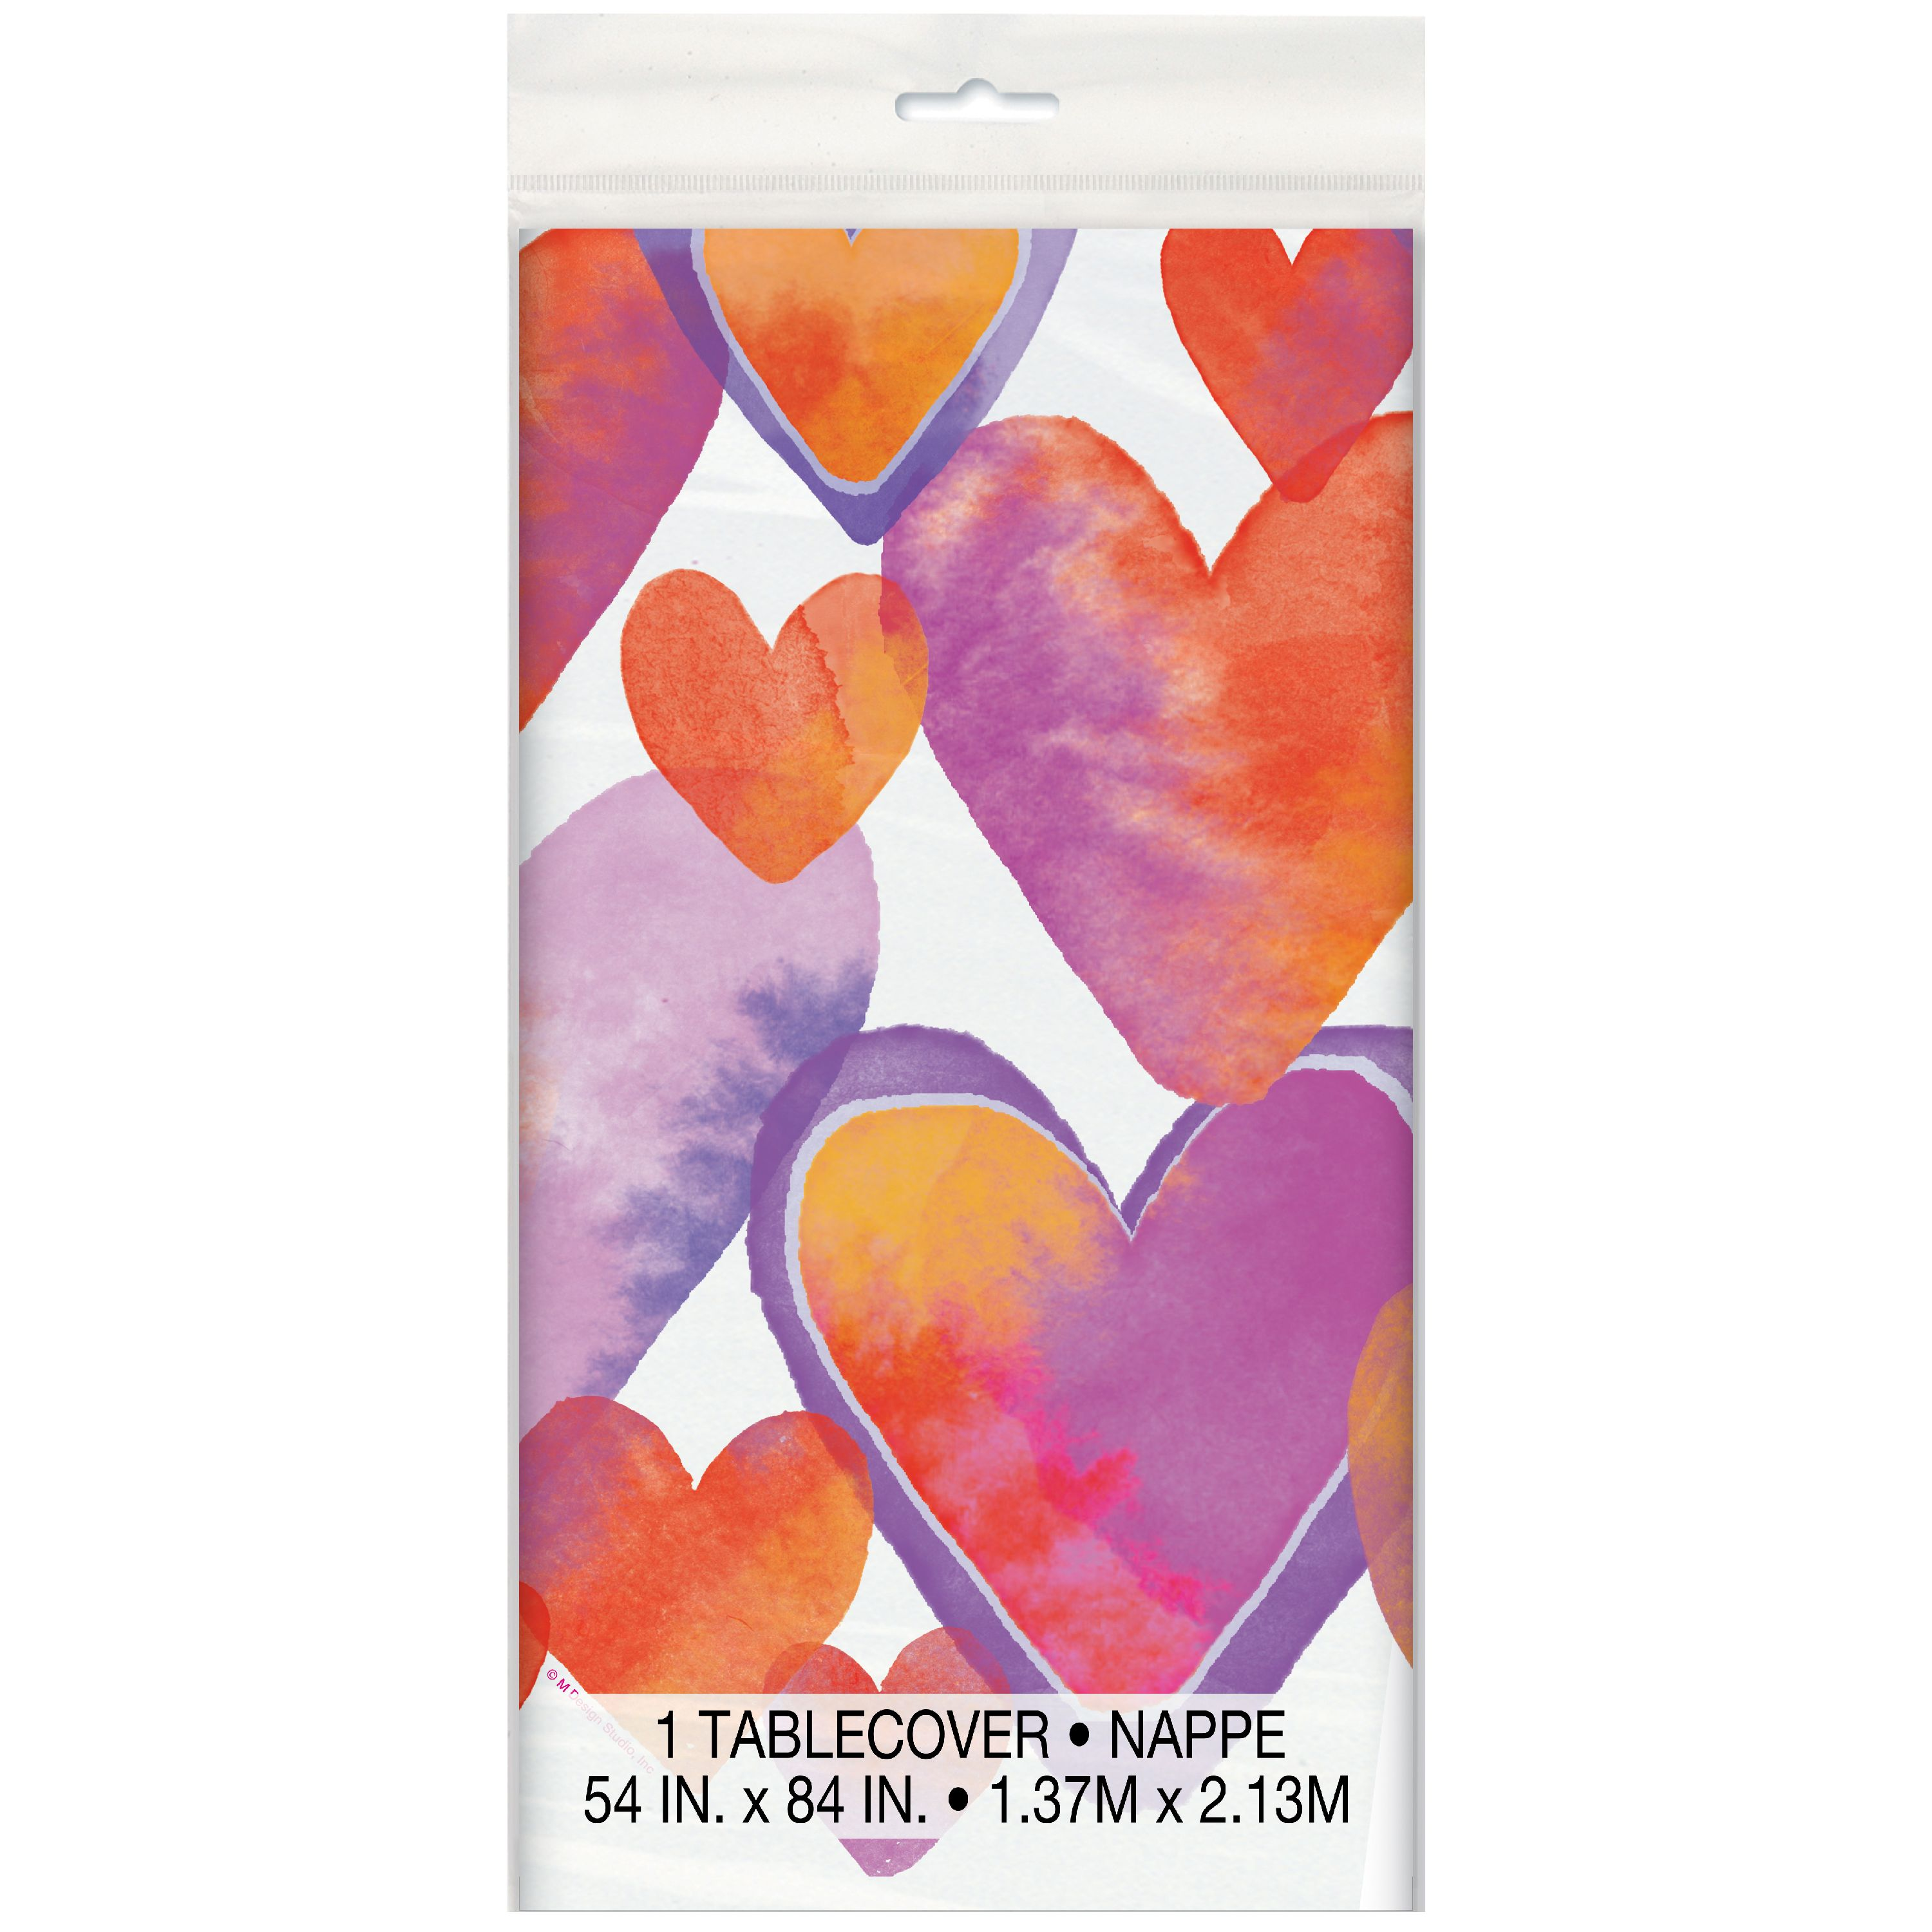 Watercolor Hearts Valentine's Day Plastic Tablecloth, 84 x 54 in, 1ct